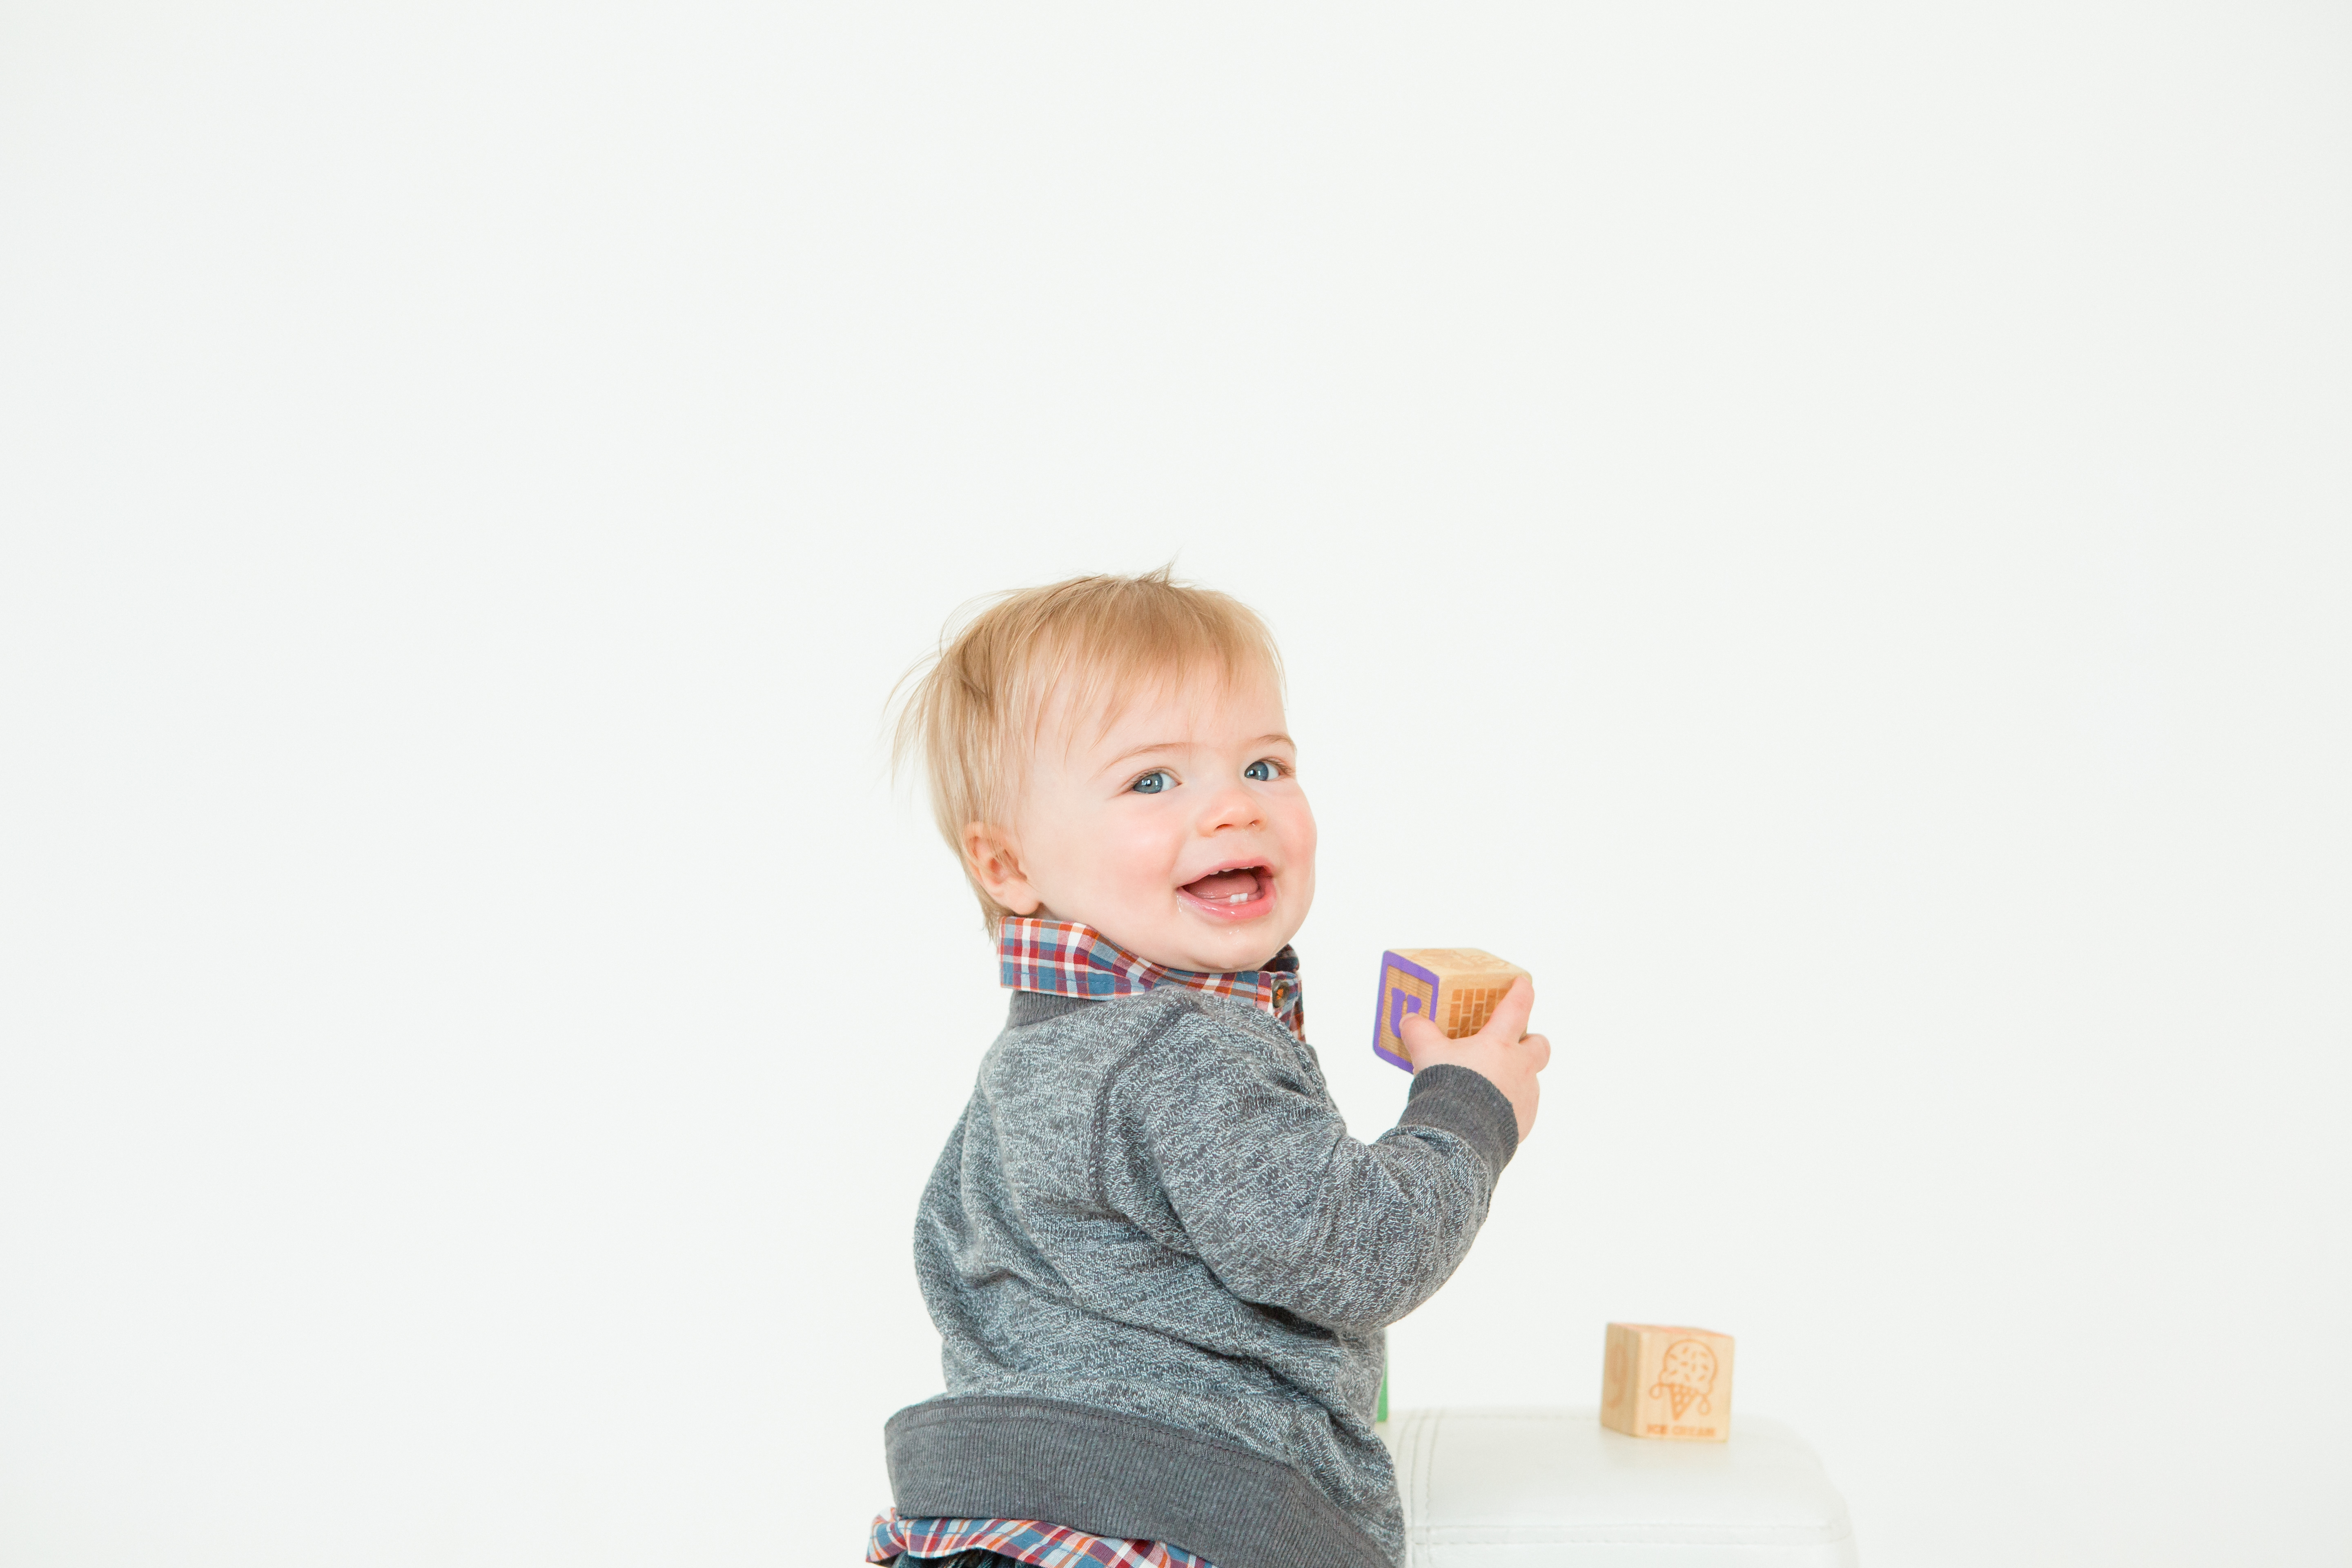 Andrew is 1 year old!